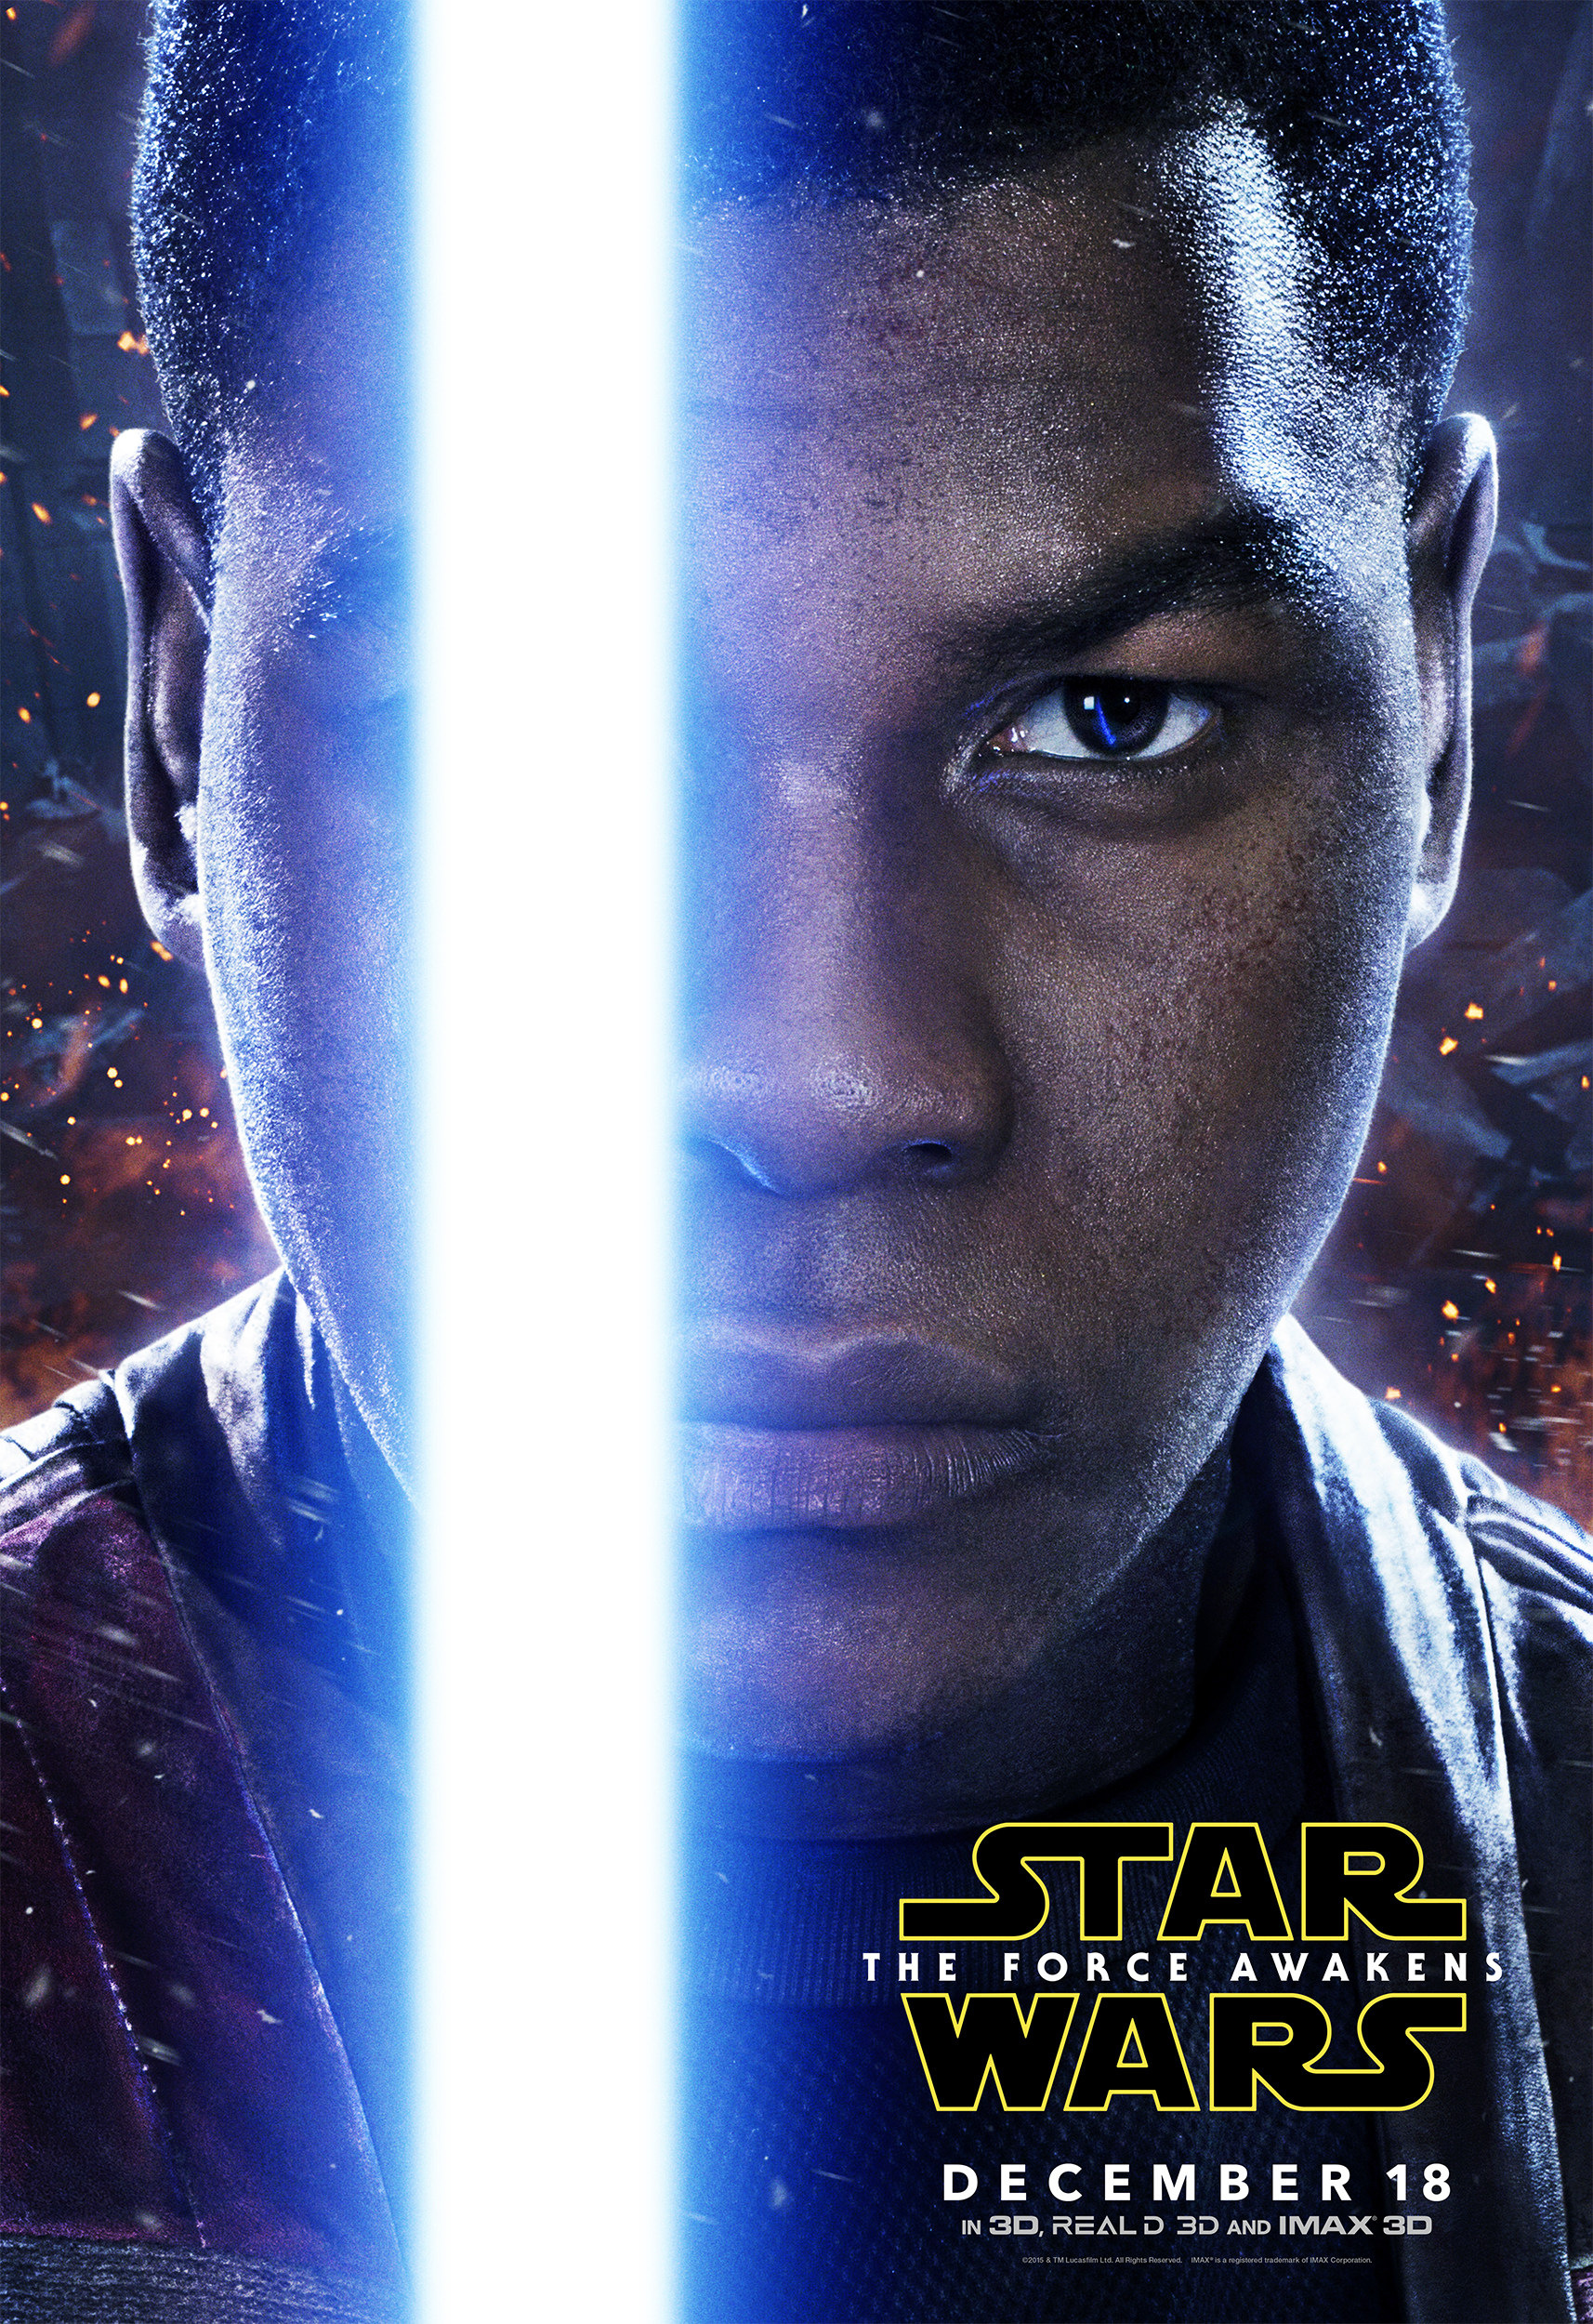 A poster featuring Finn with a lightsaber.